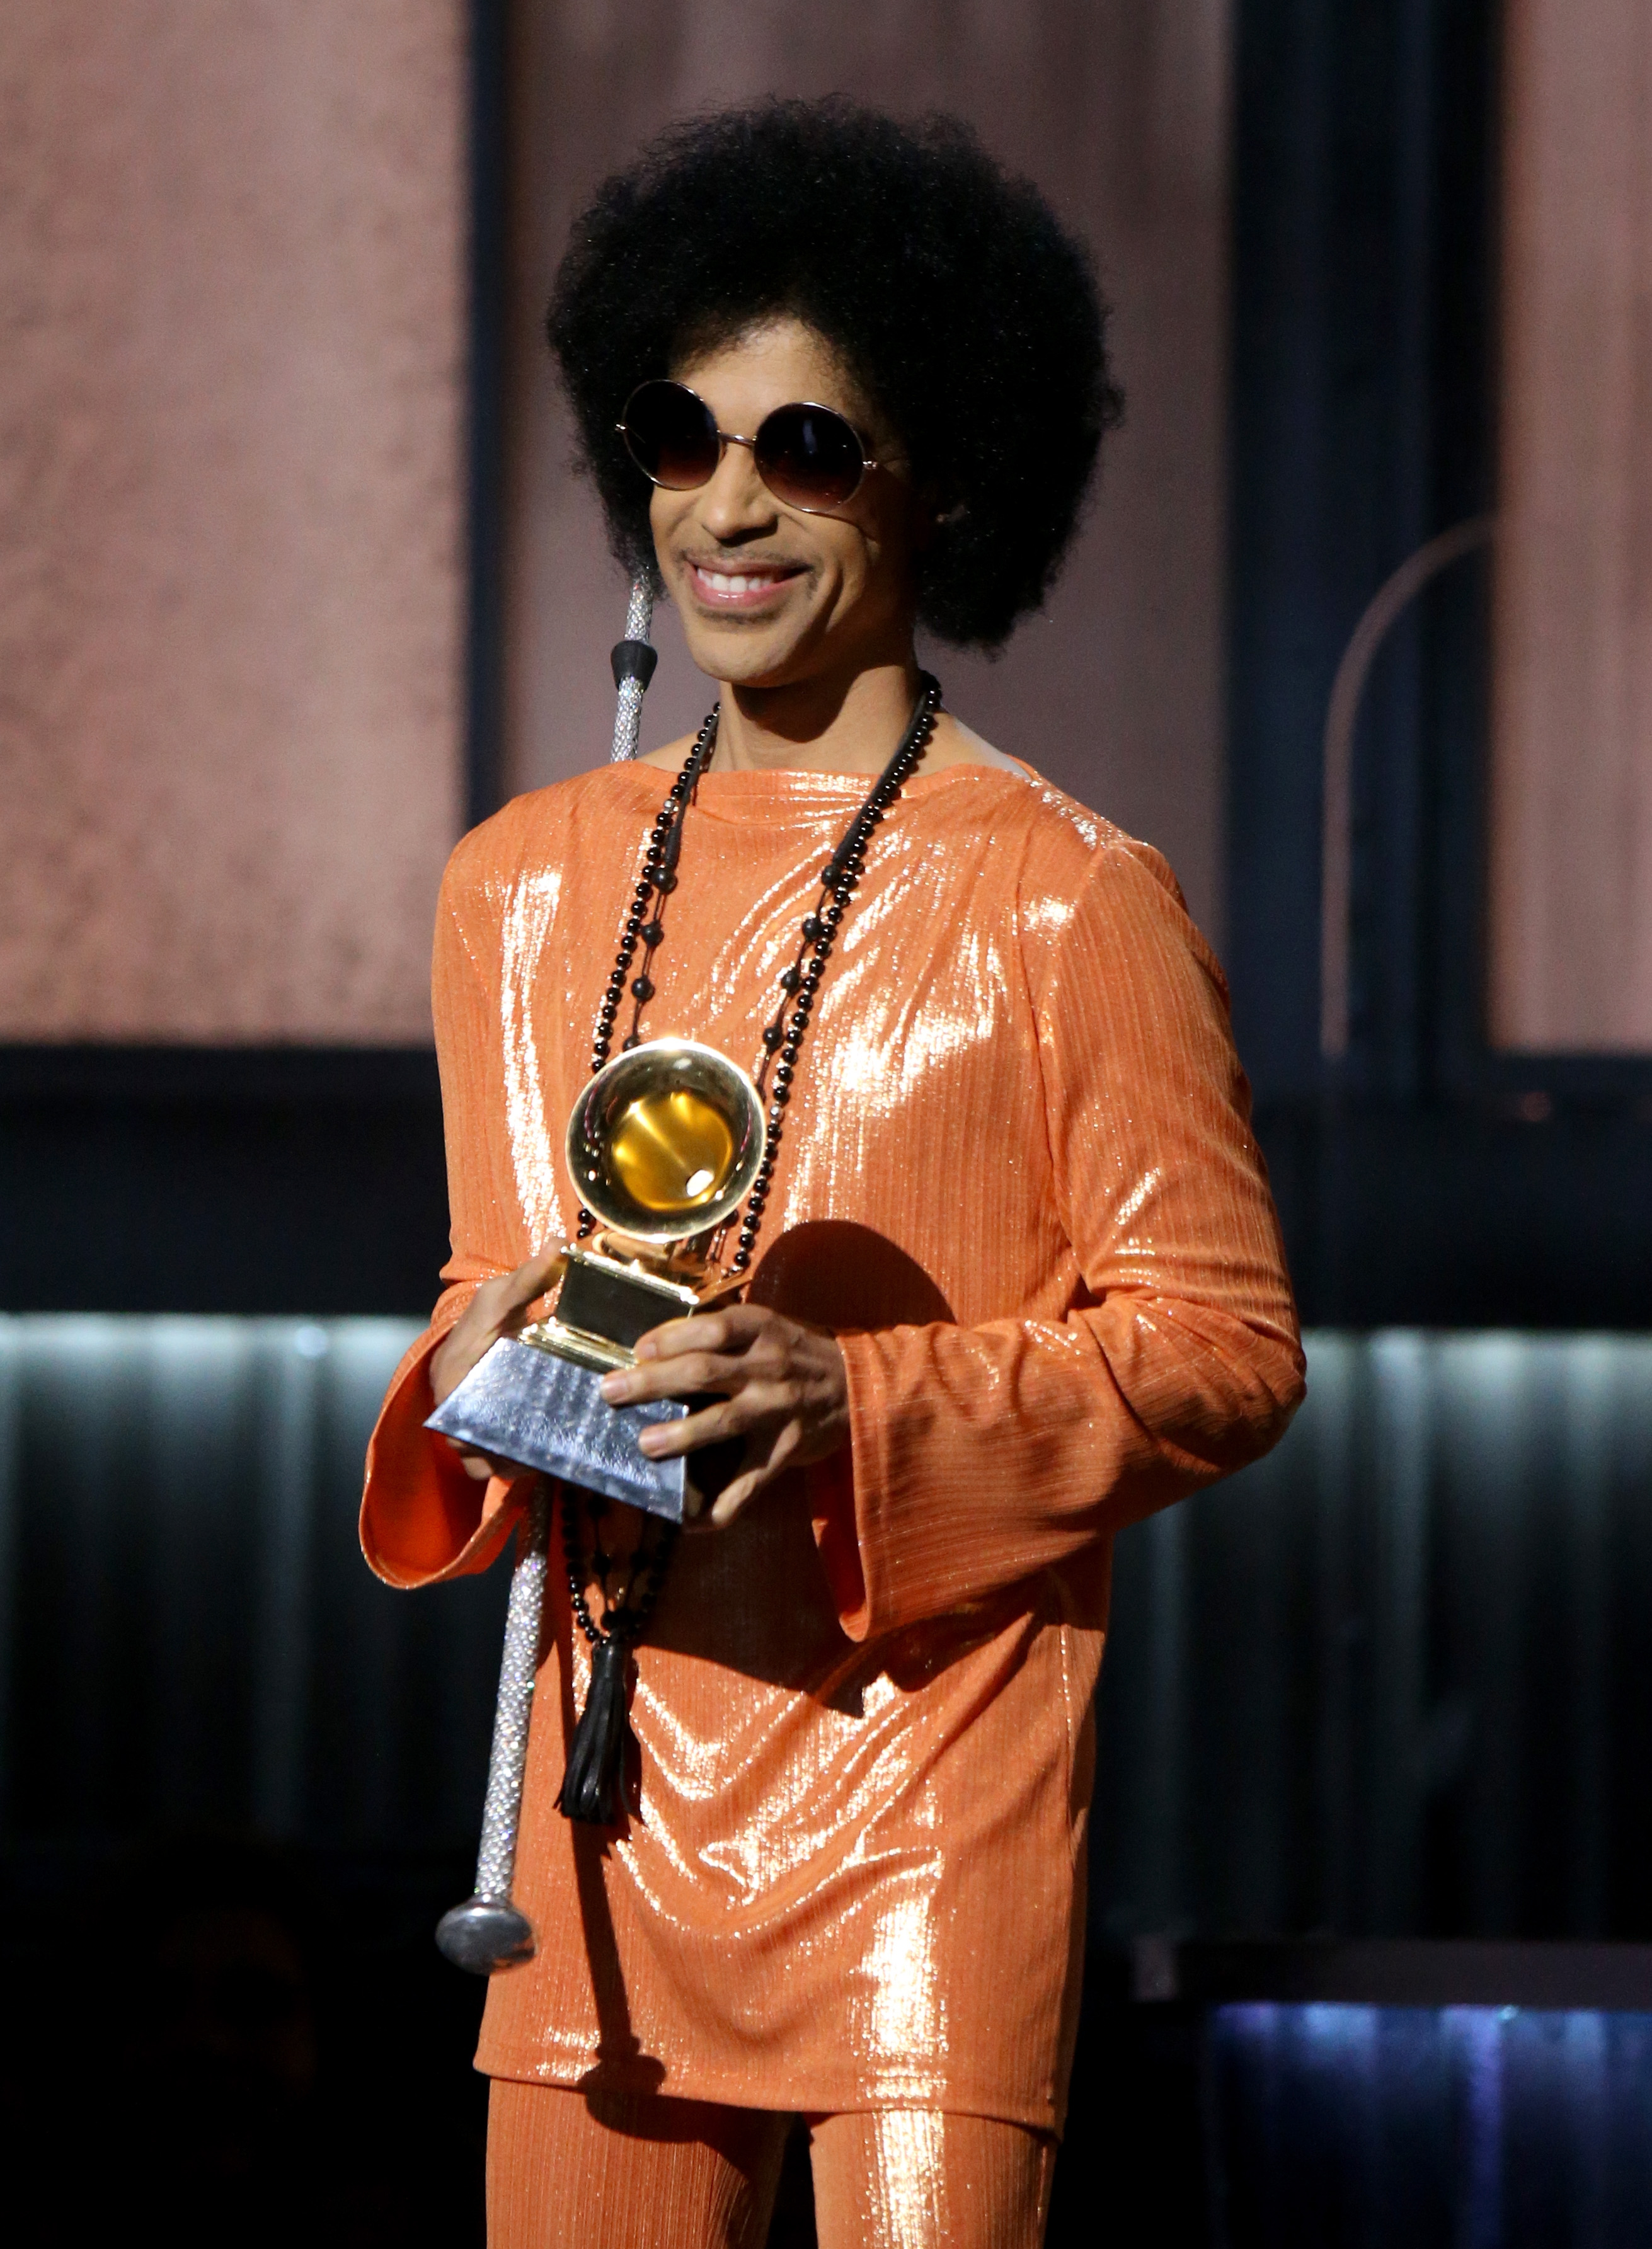 Prince speaks onstage during The 57th Annual GRAMMY Awards at on February 8, 2015 in Los Angeles, California.